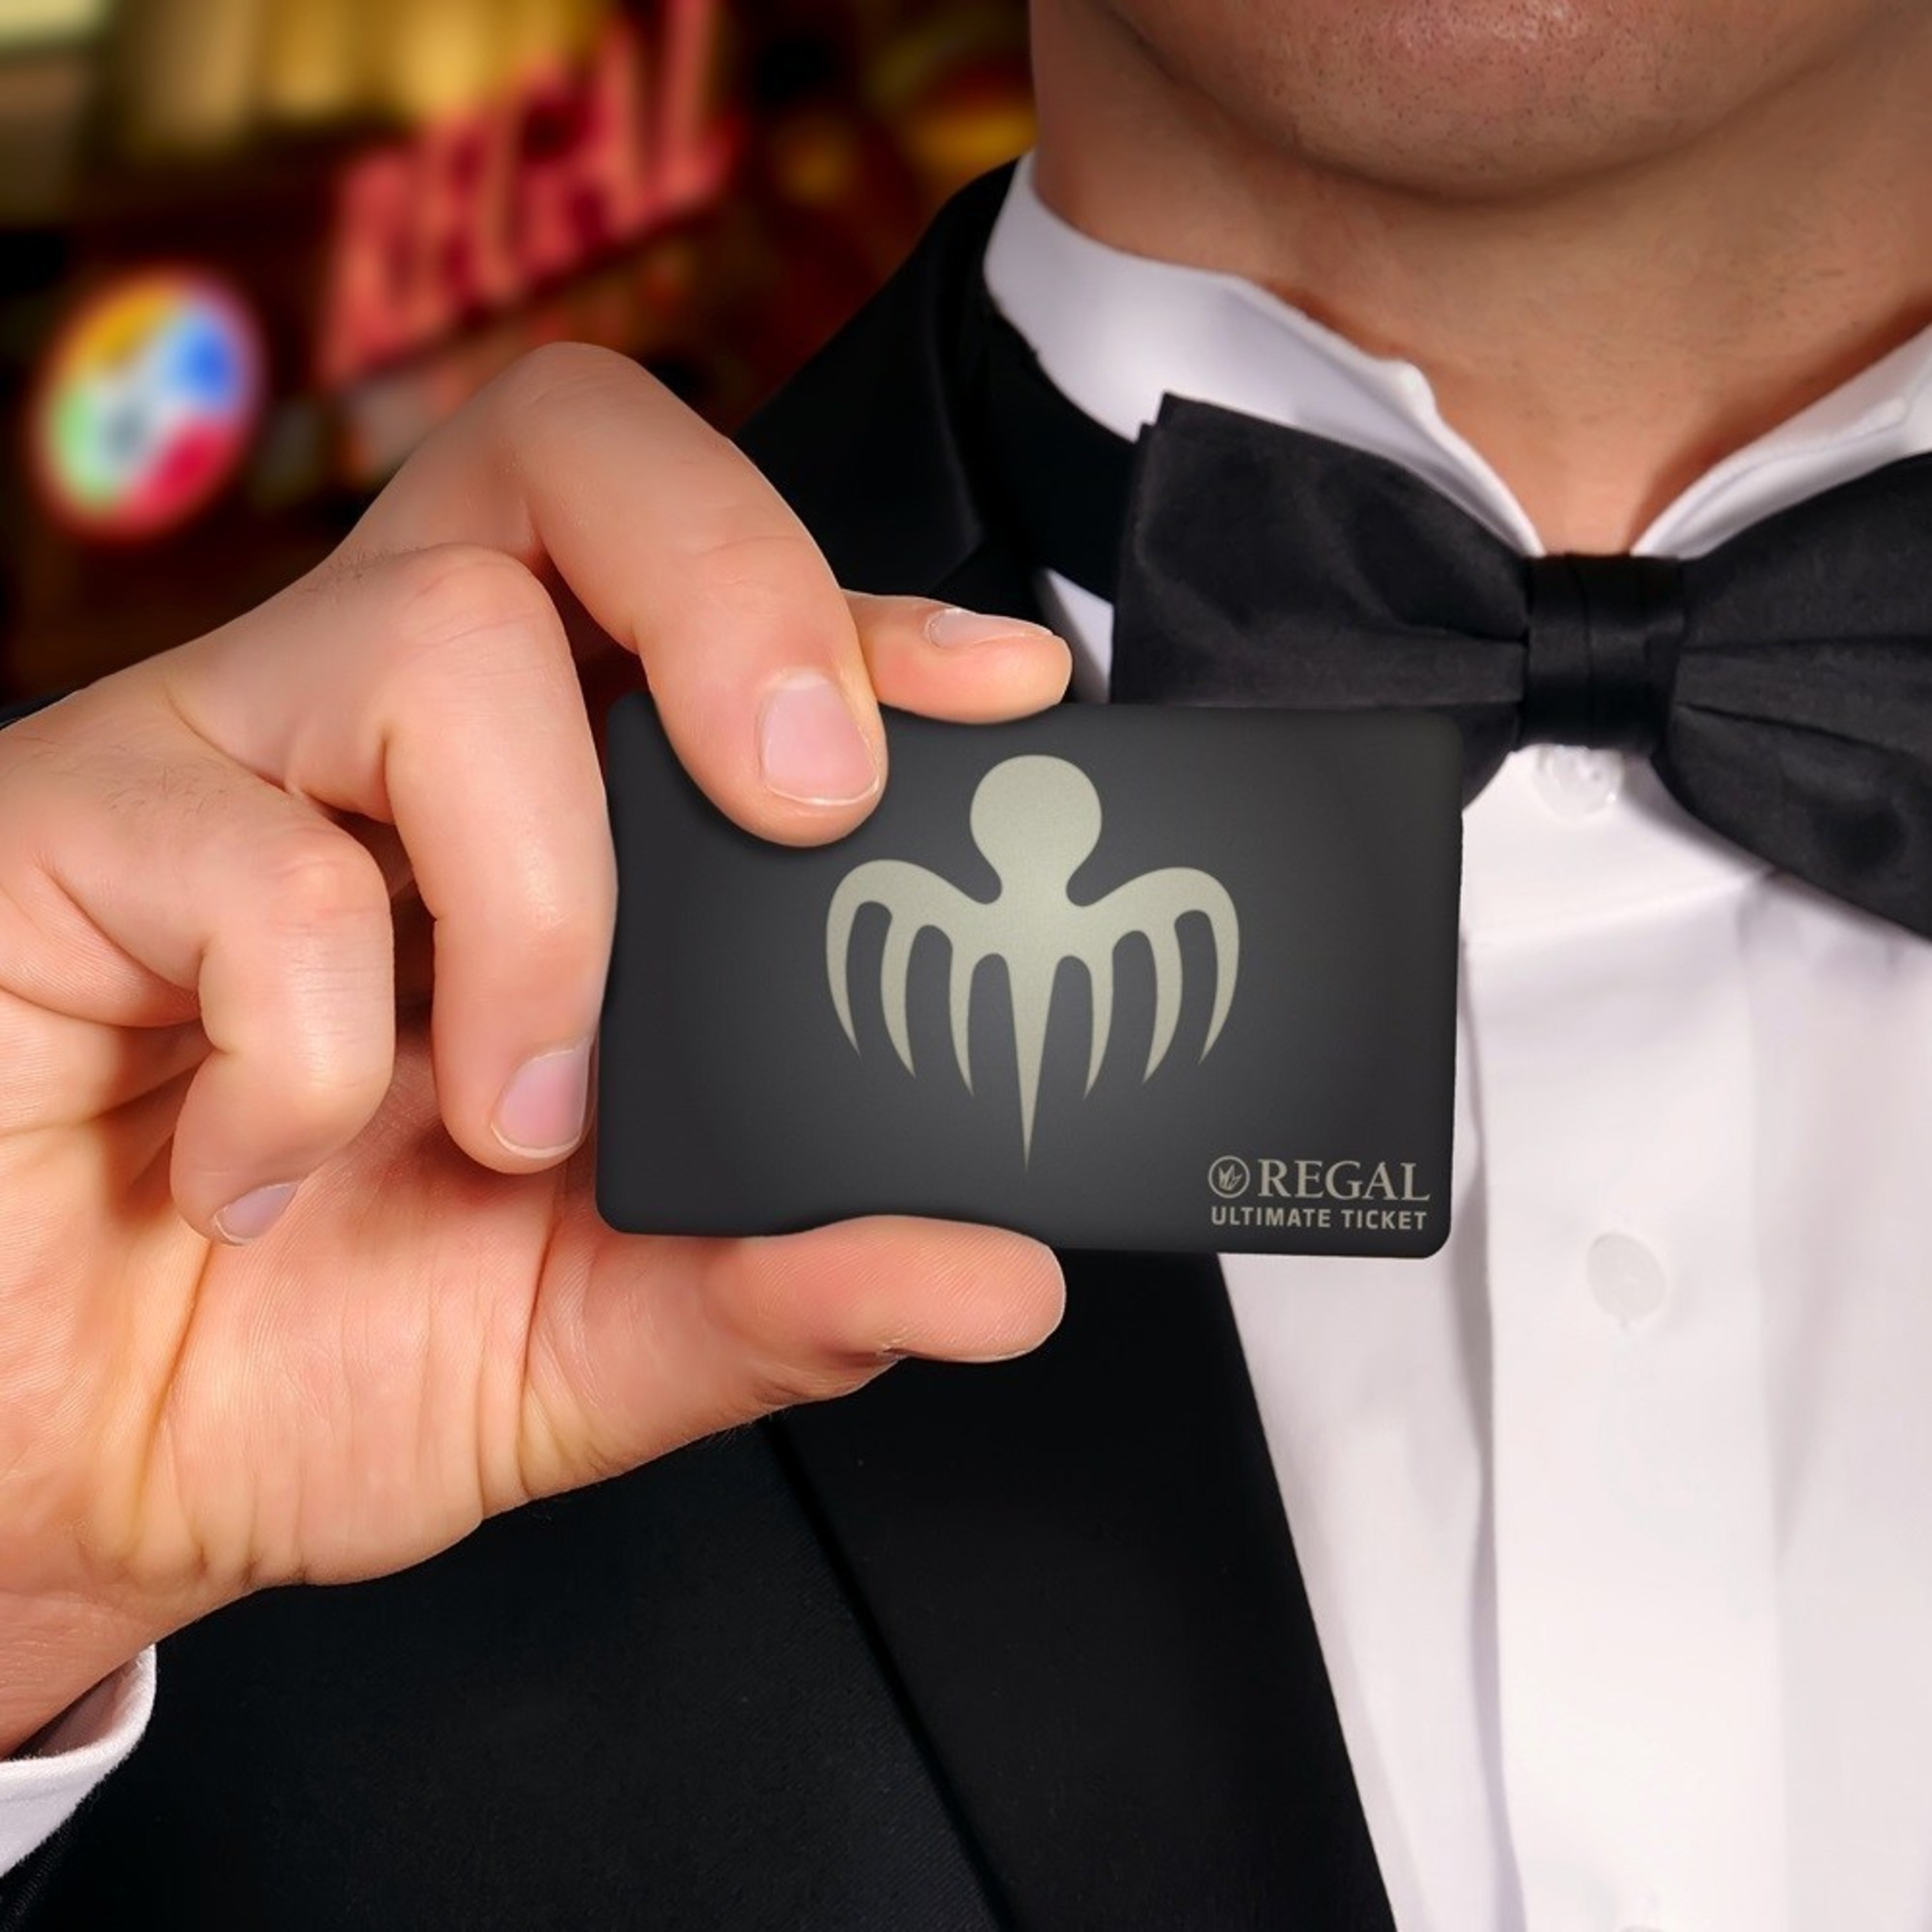 Regal has the Ultimate Ticket to Spectre